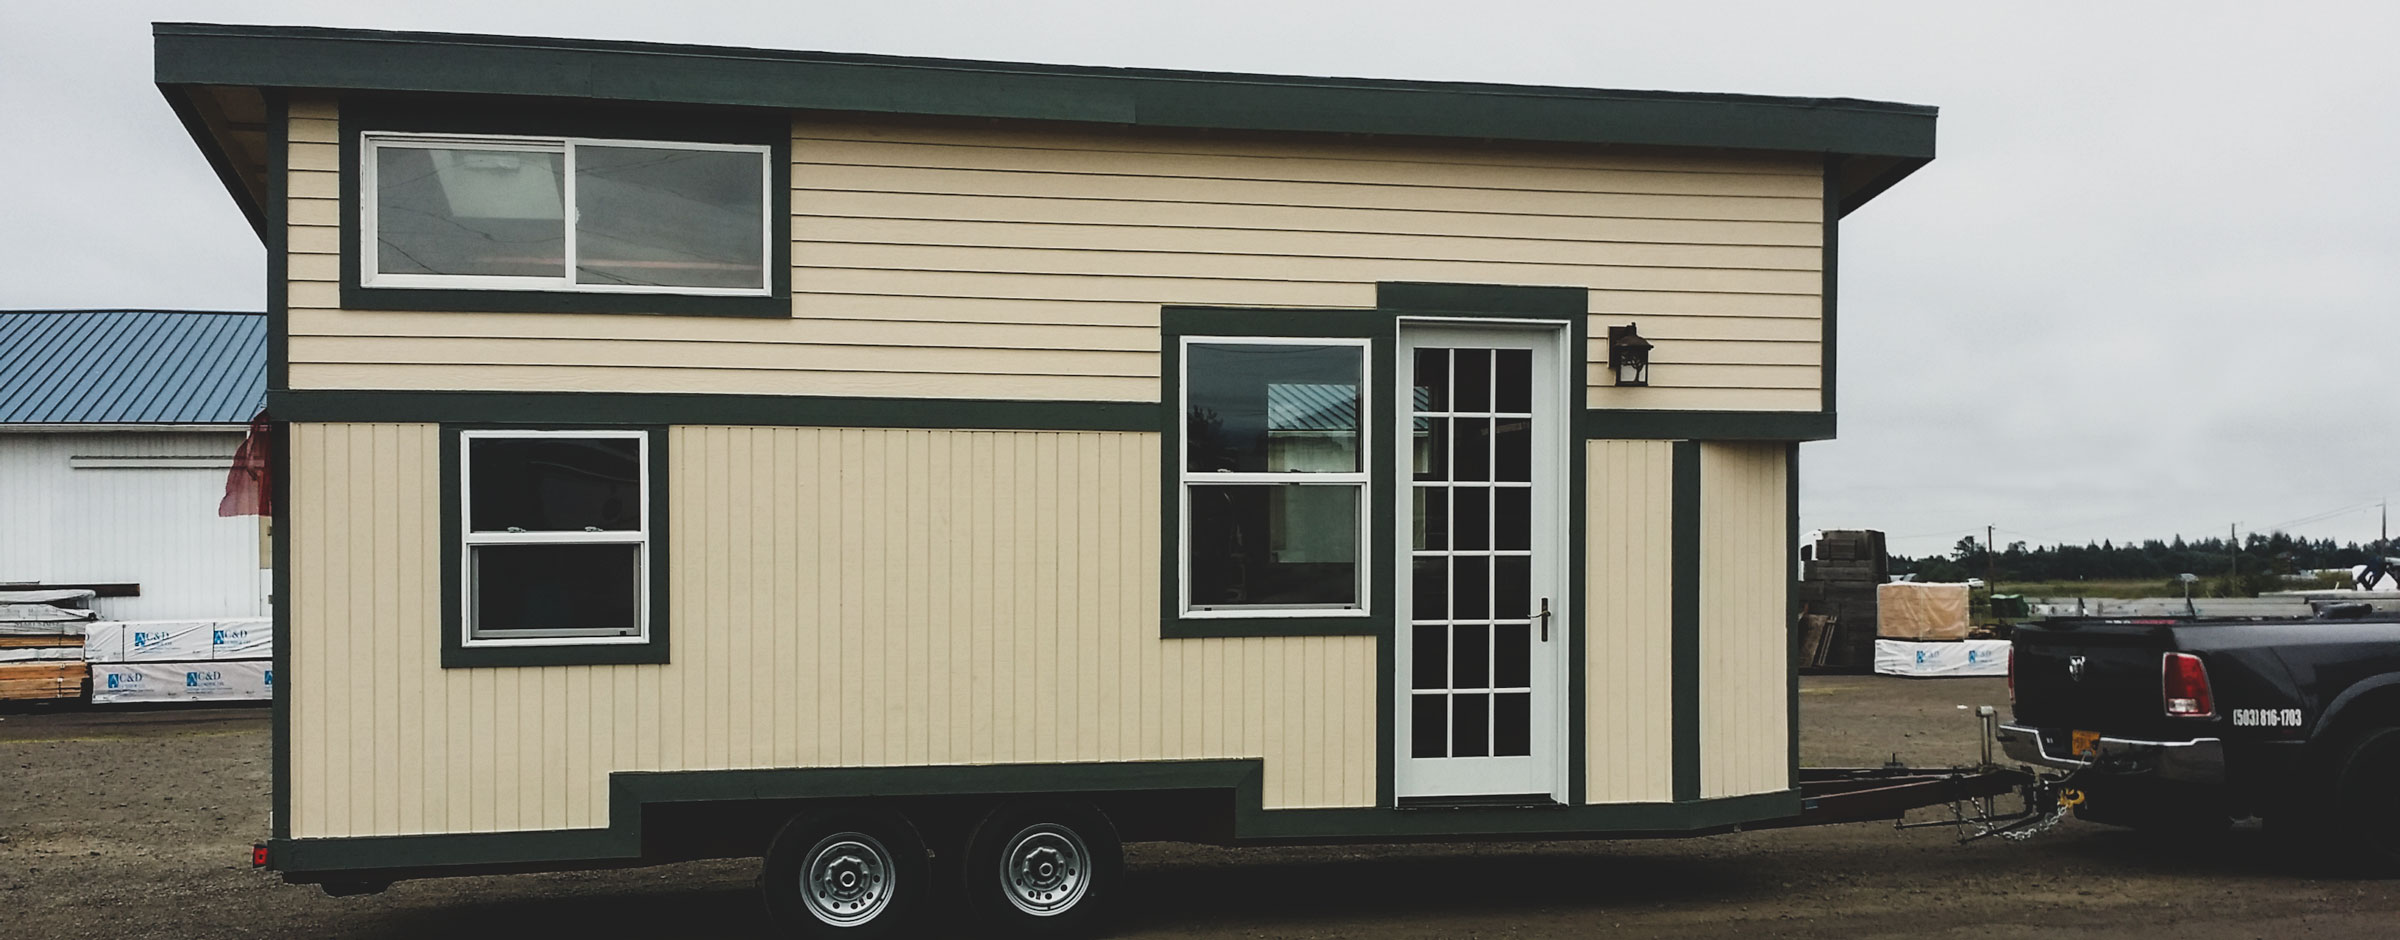 decked out mobile homes, action mobile homes, southern living mobile homes, home improvement mobile homes, on mobile home design hgtv